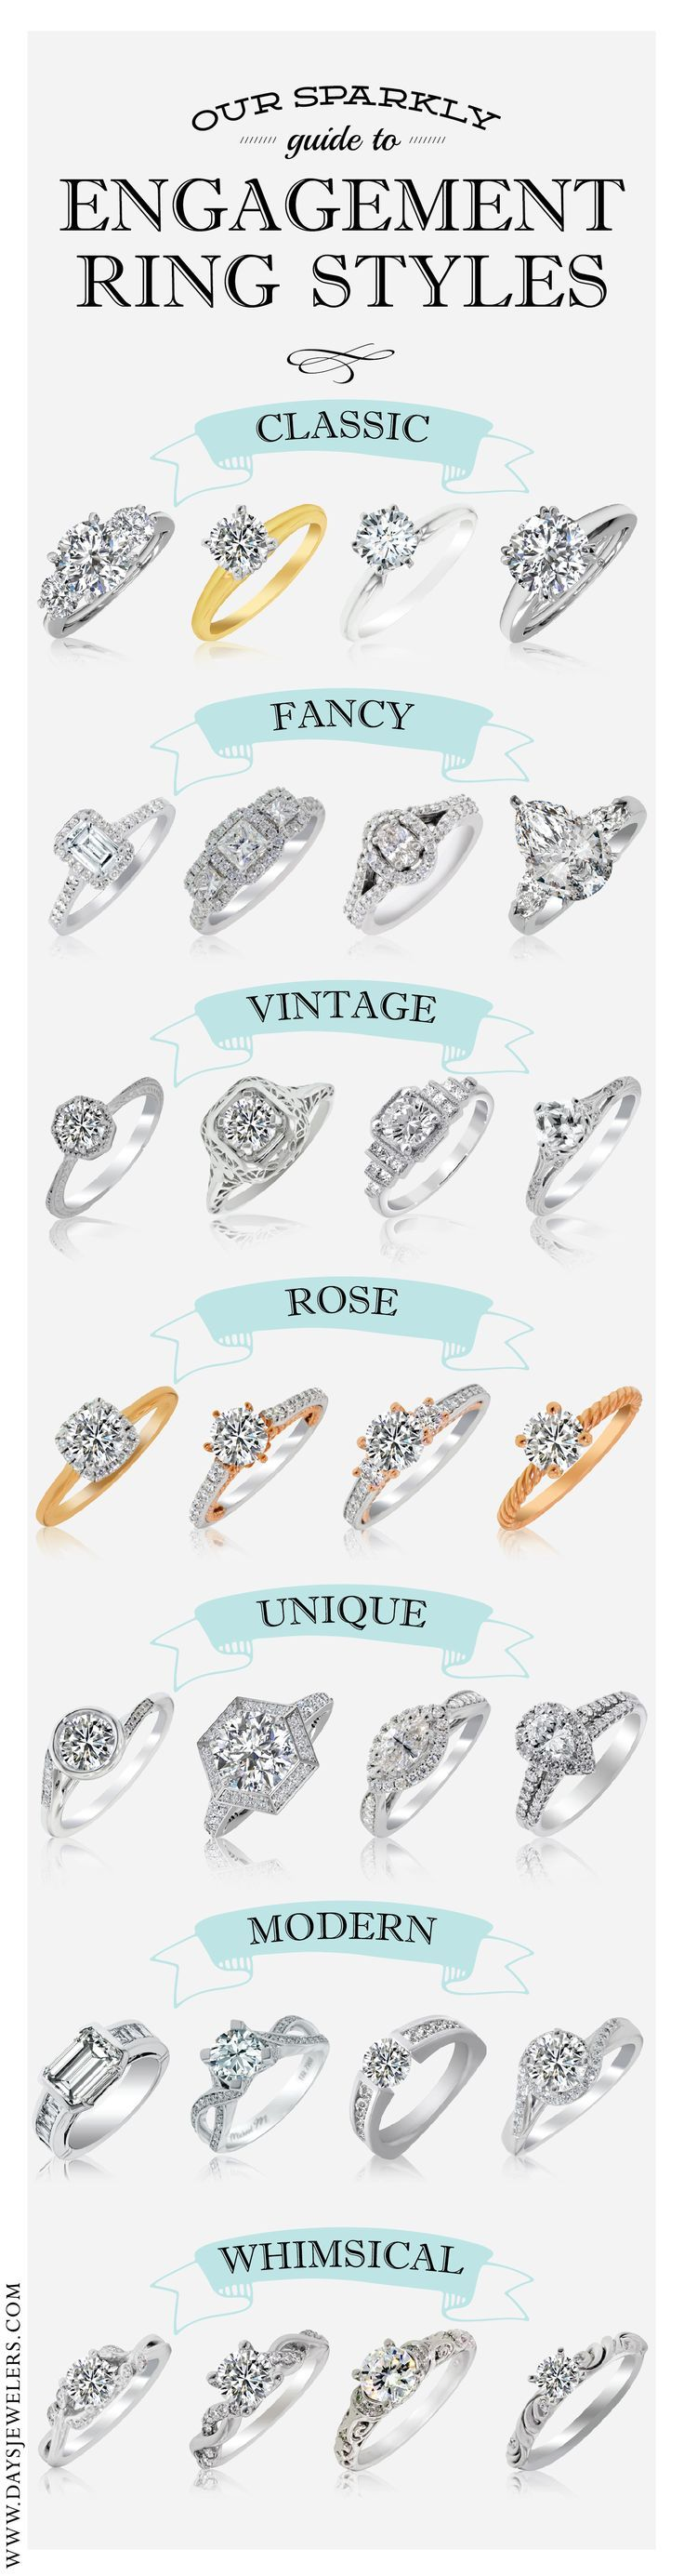 Engagement Ring Style Guide